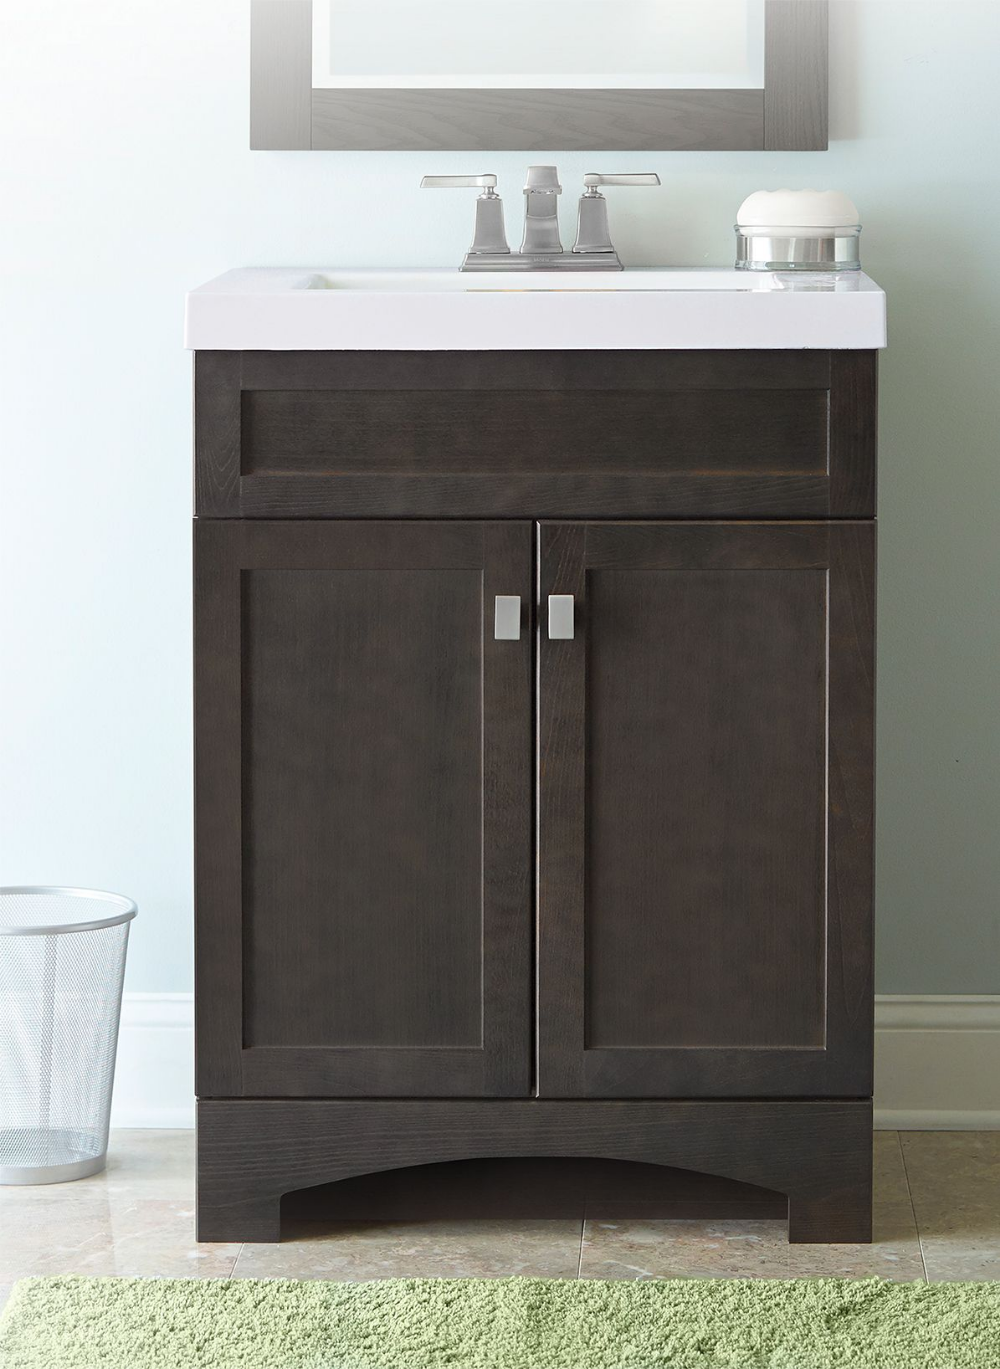 Style Selections Drayden 24 In Heirloom Single Sink Bathroom Vanity With White Cultured Marble Top Lowes Com Bathroom Sink Vanity Single Sink Bathroom Vanity Bathroom Vanity